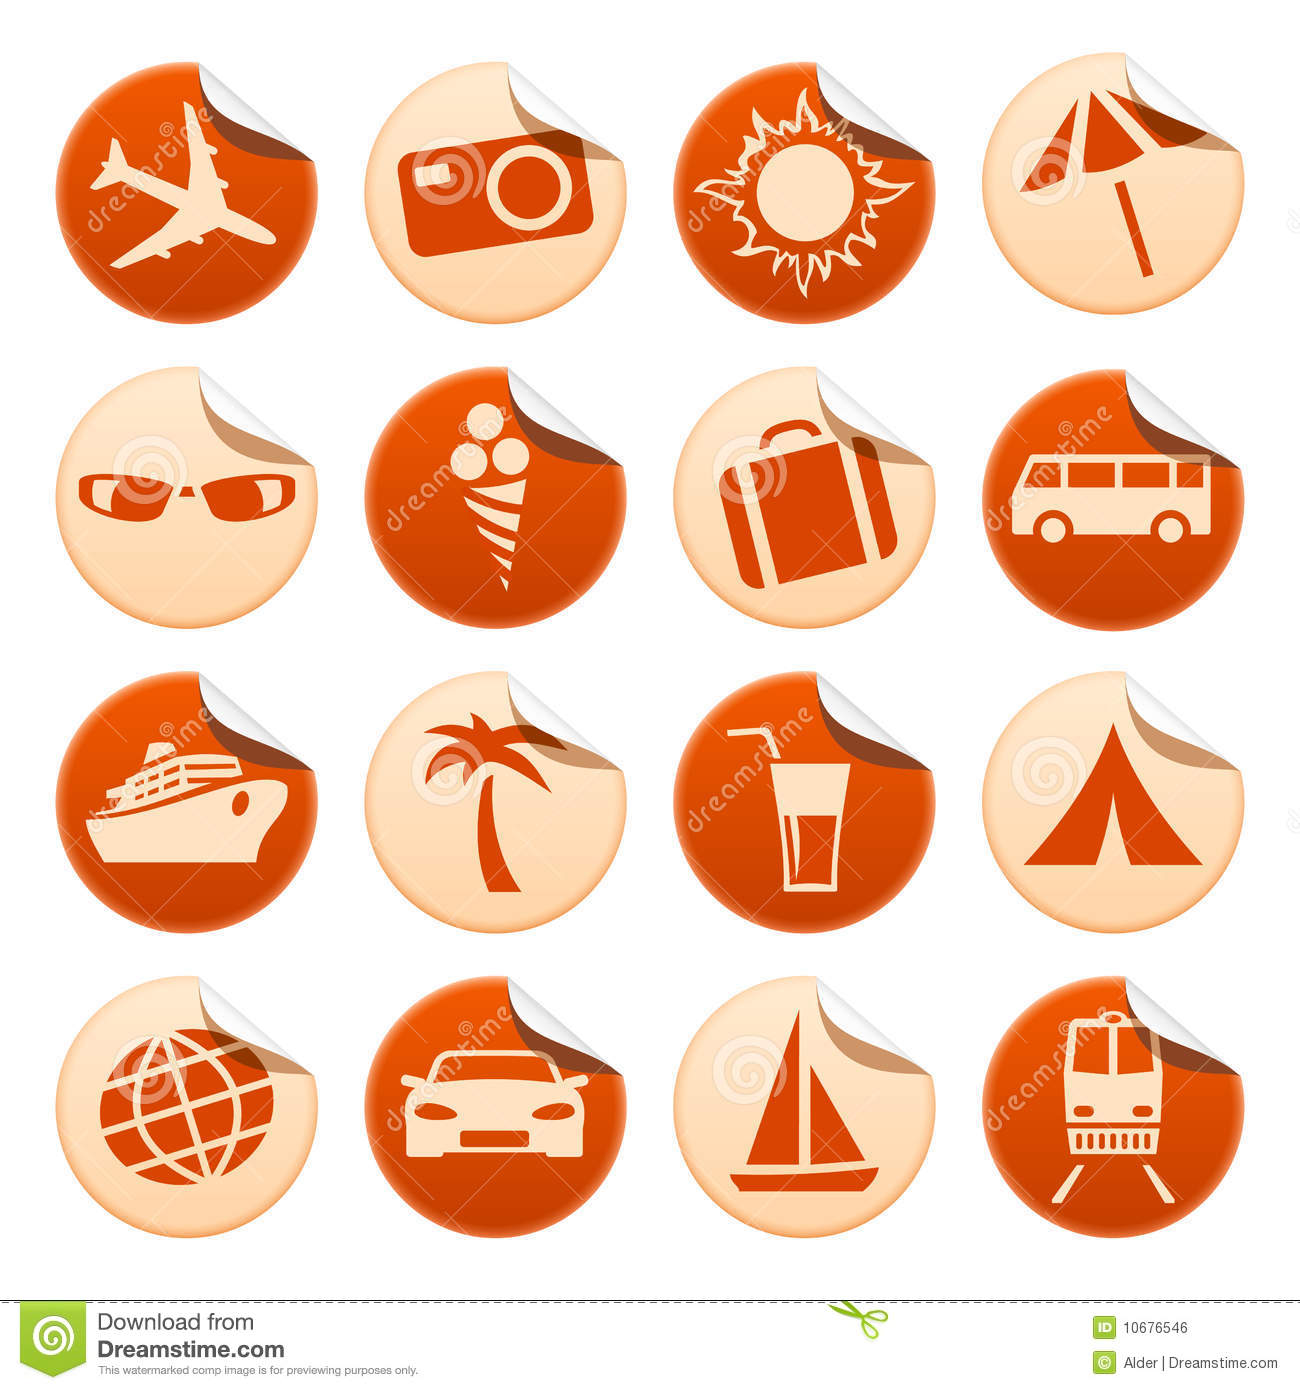 Travel Amp Tourism Stickers Royalty Free Stock Image Image